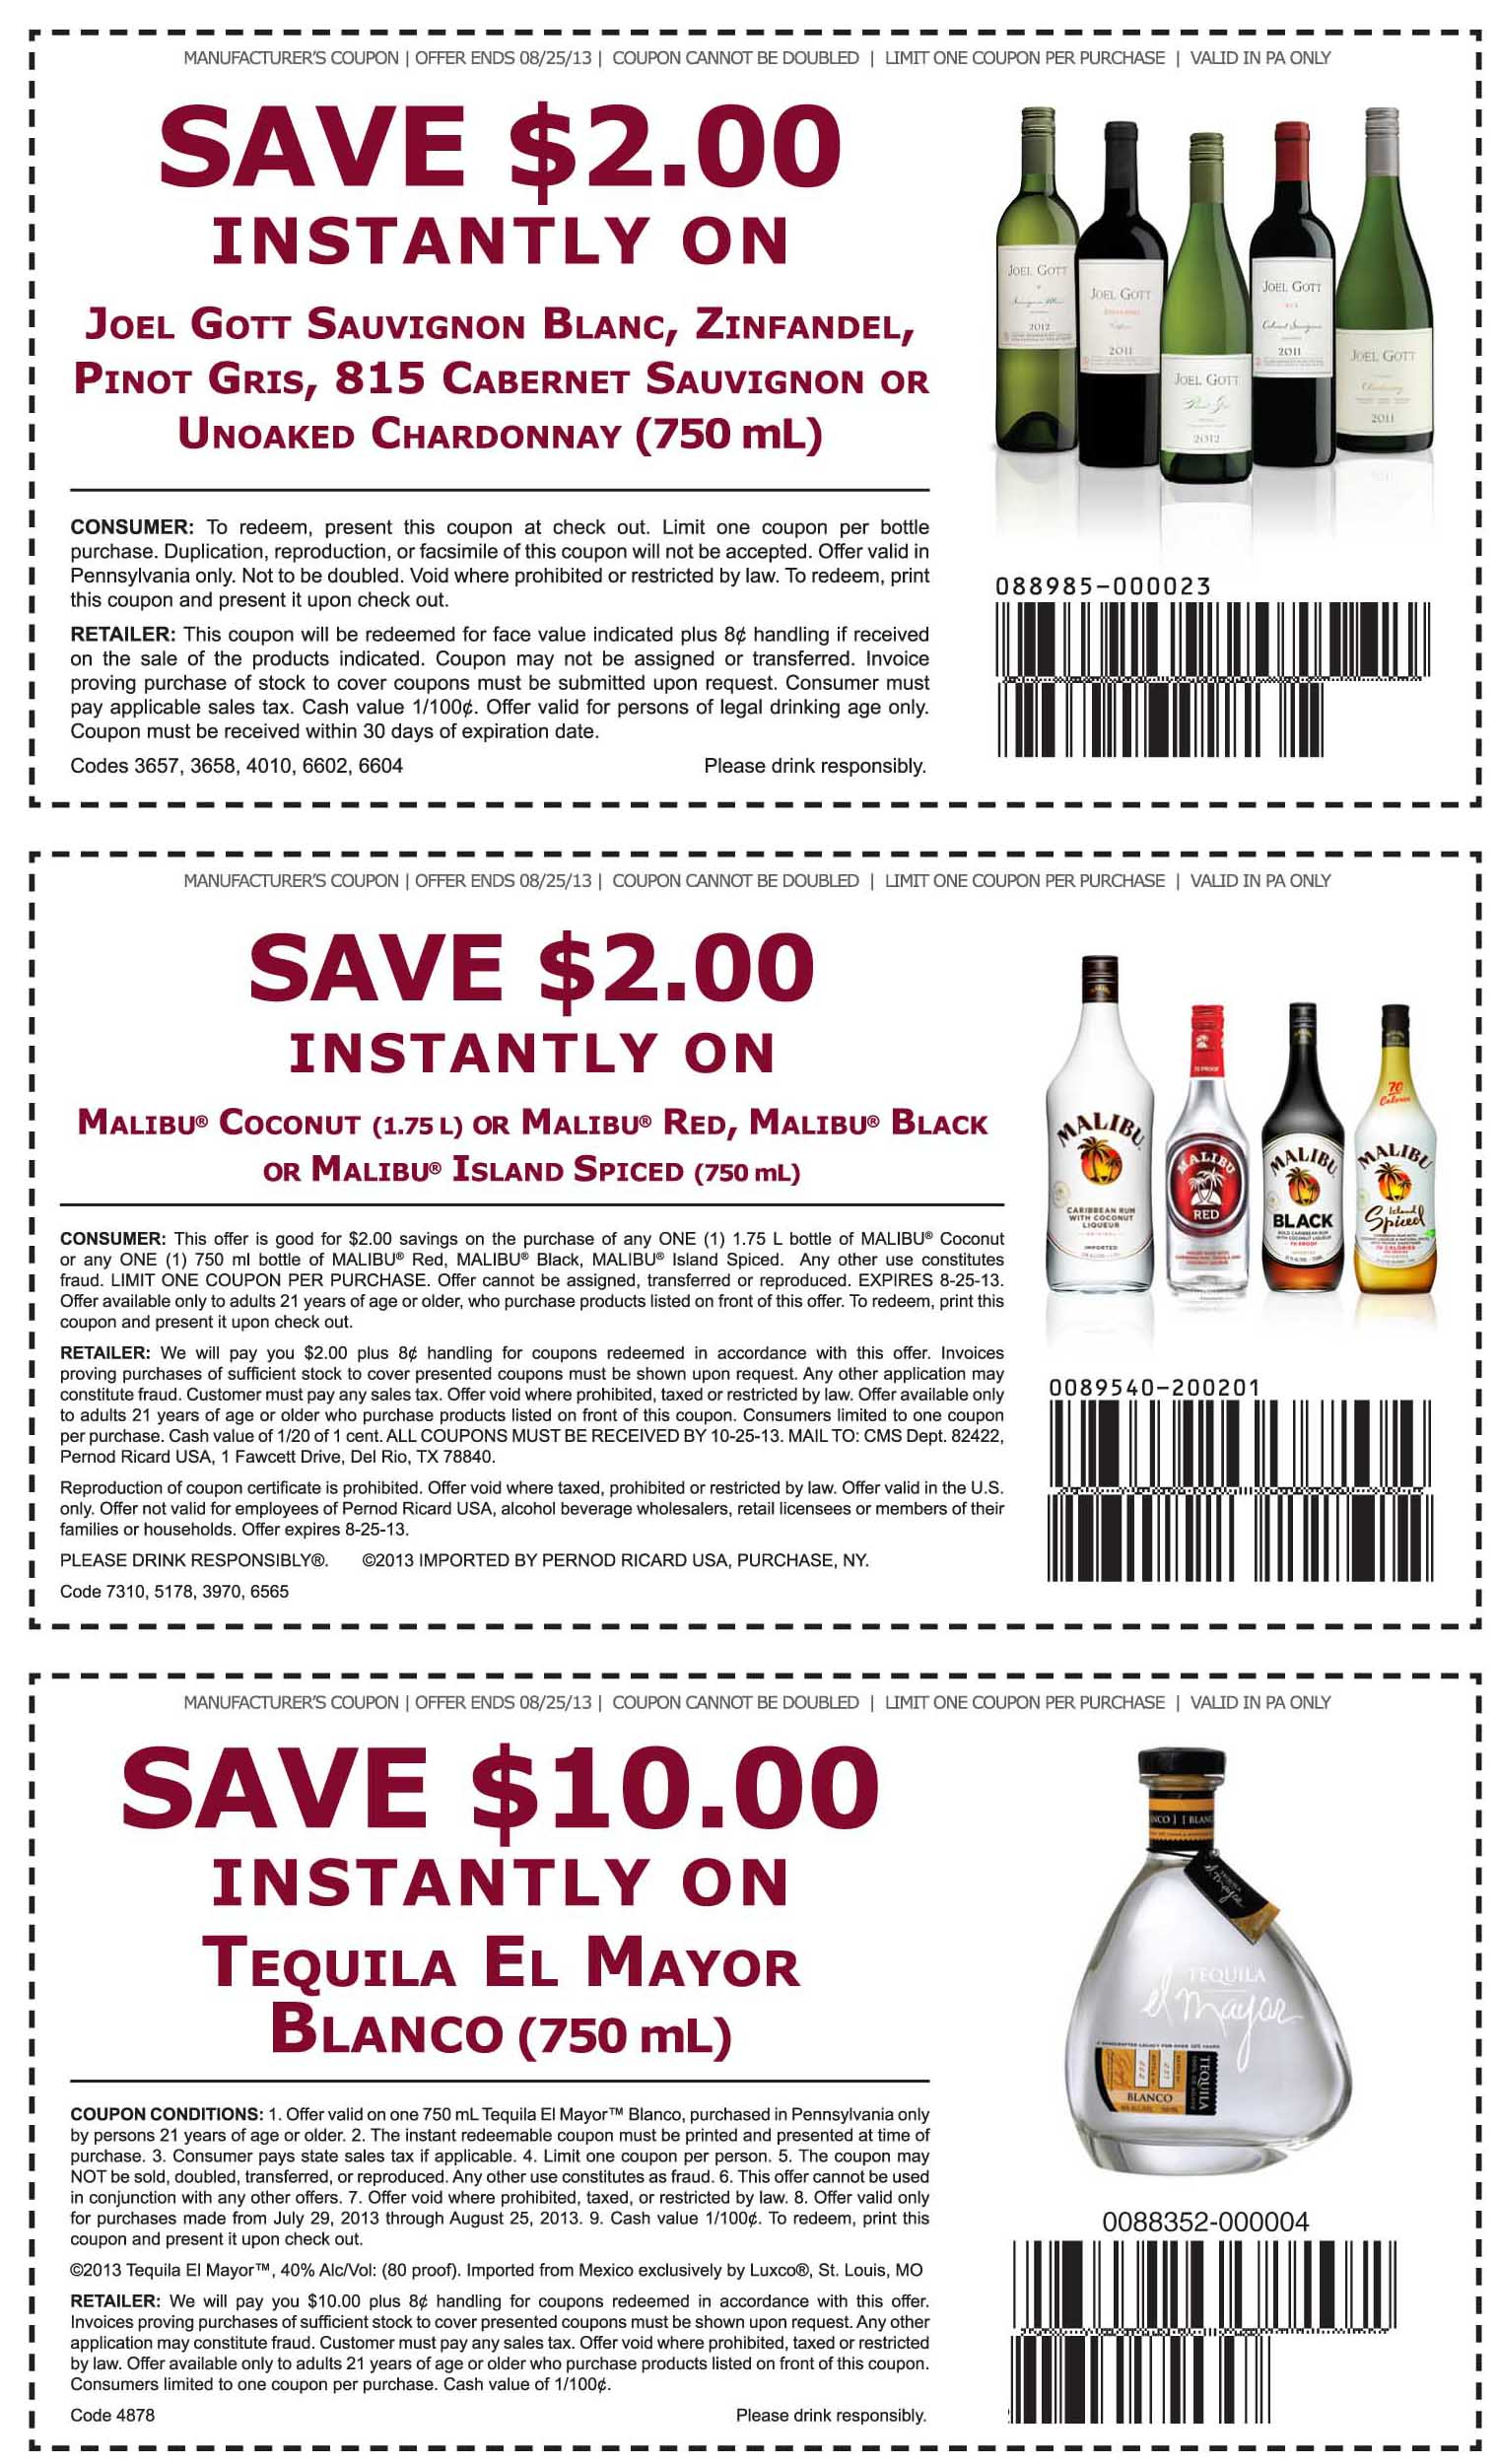 Wine.com coupon codes